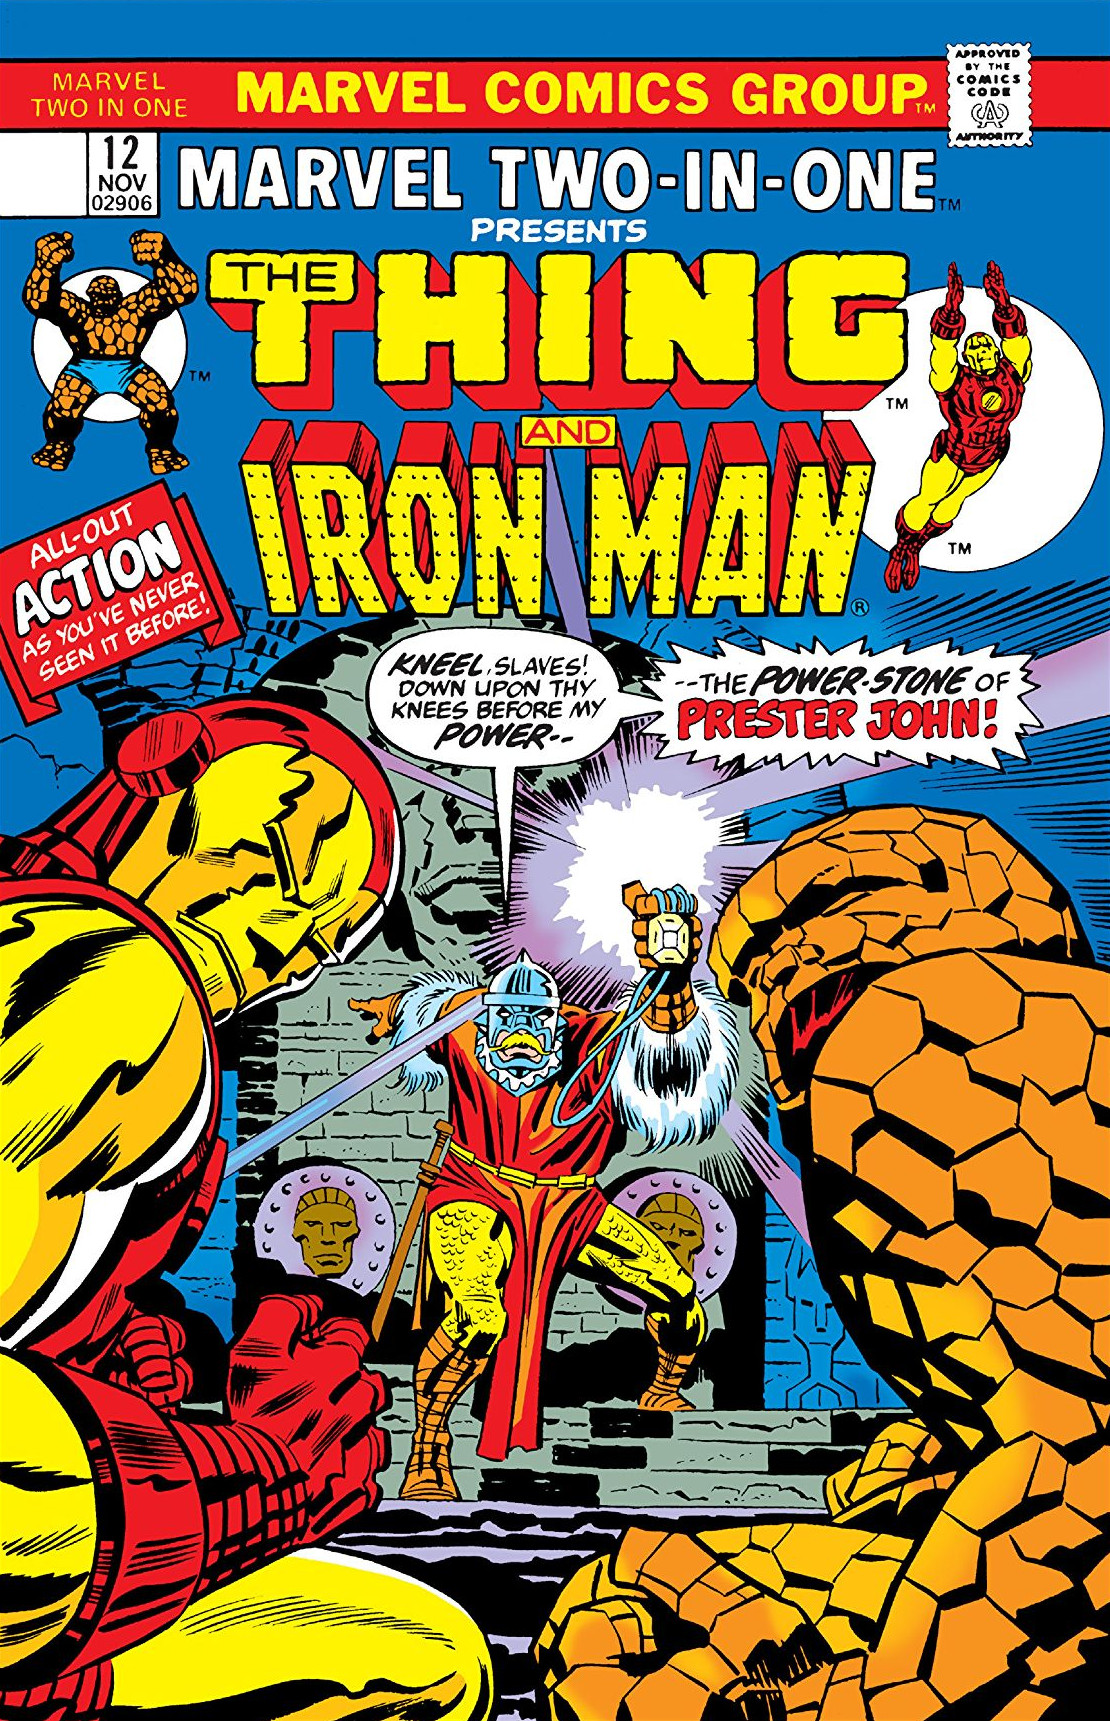 Marvel Two-In-One Vol 1 12